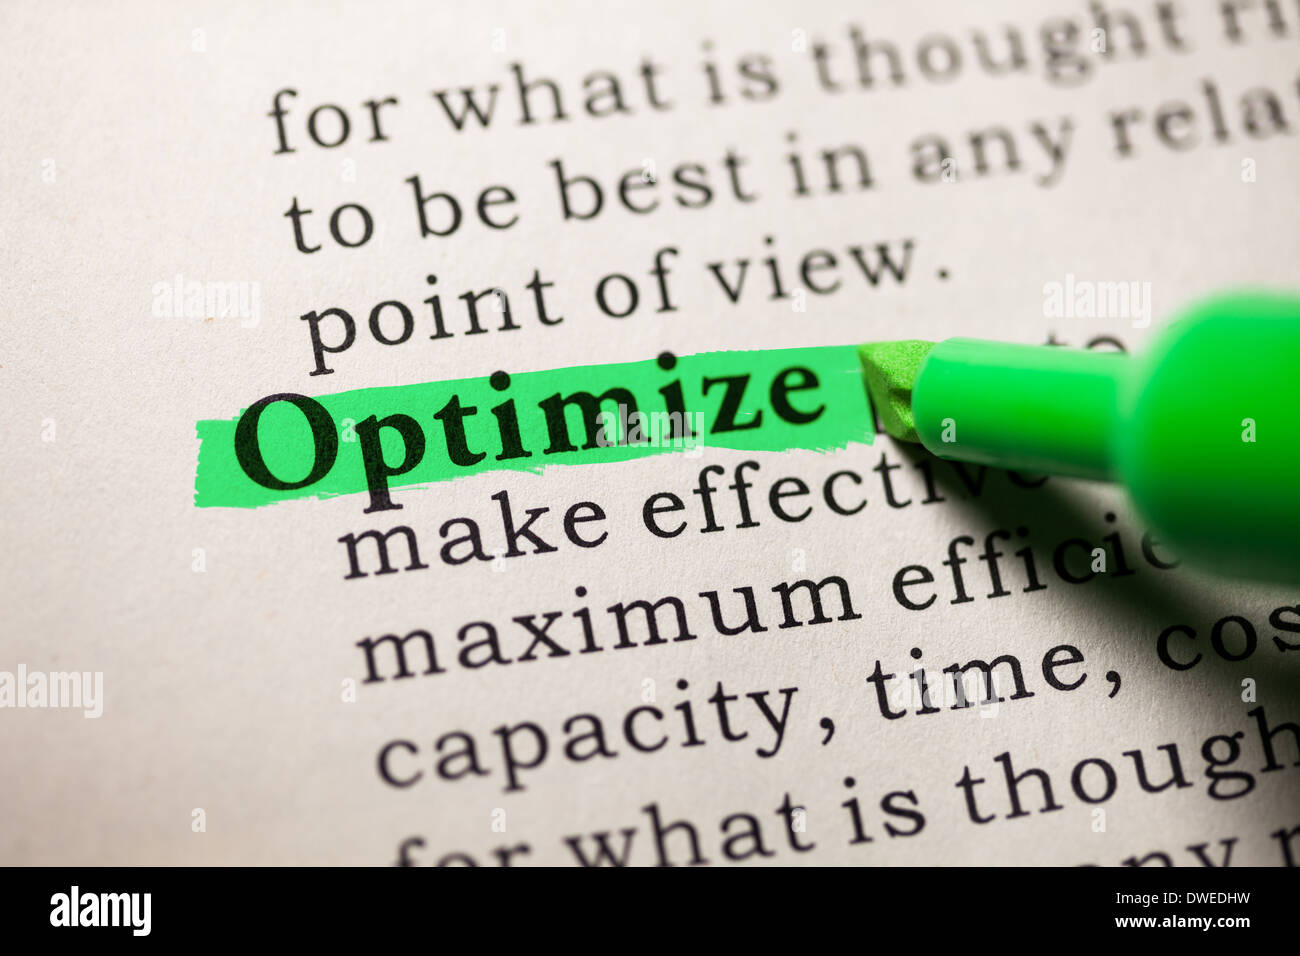 Fake Dictionary, Dictionary Definition Of The Word Optimize.